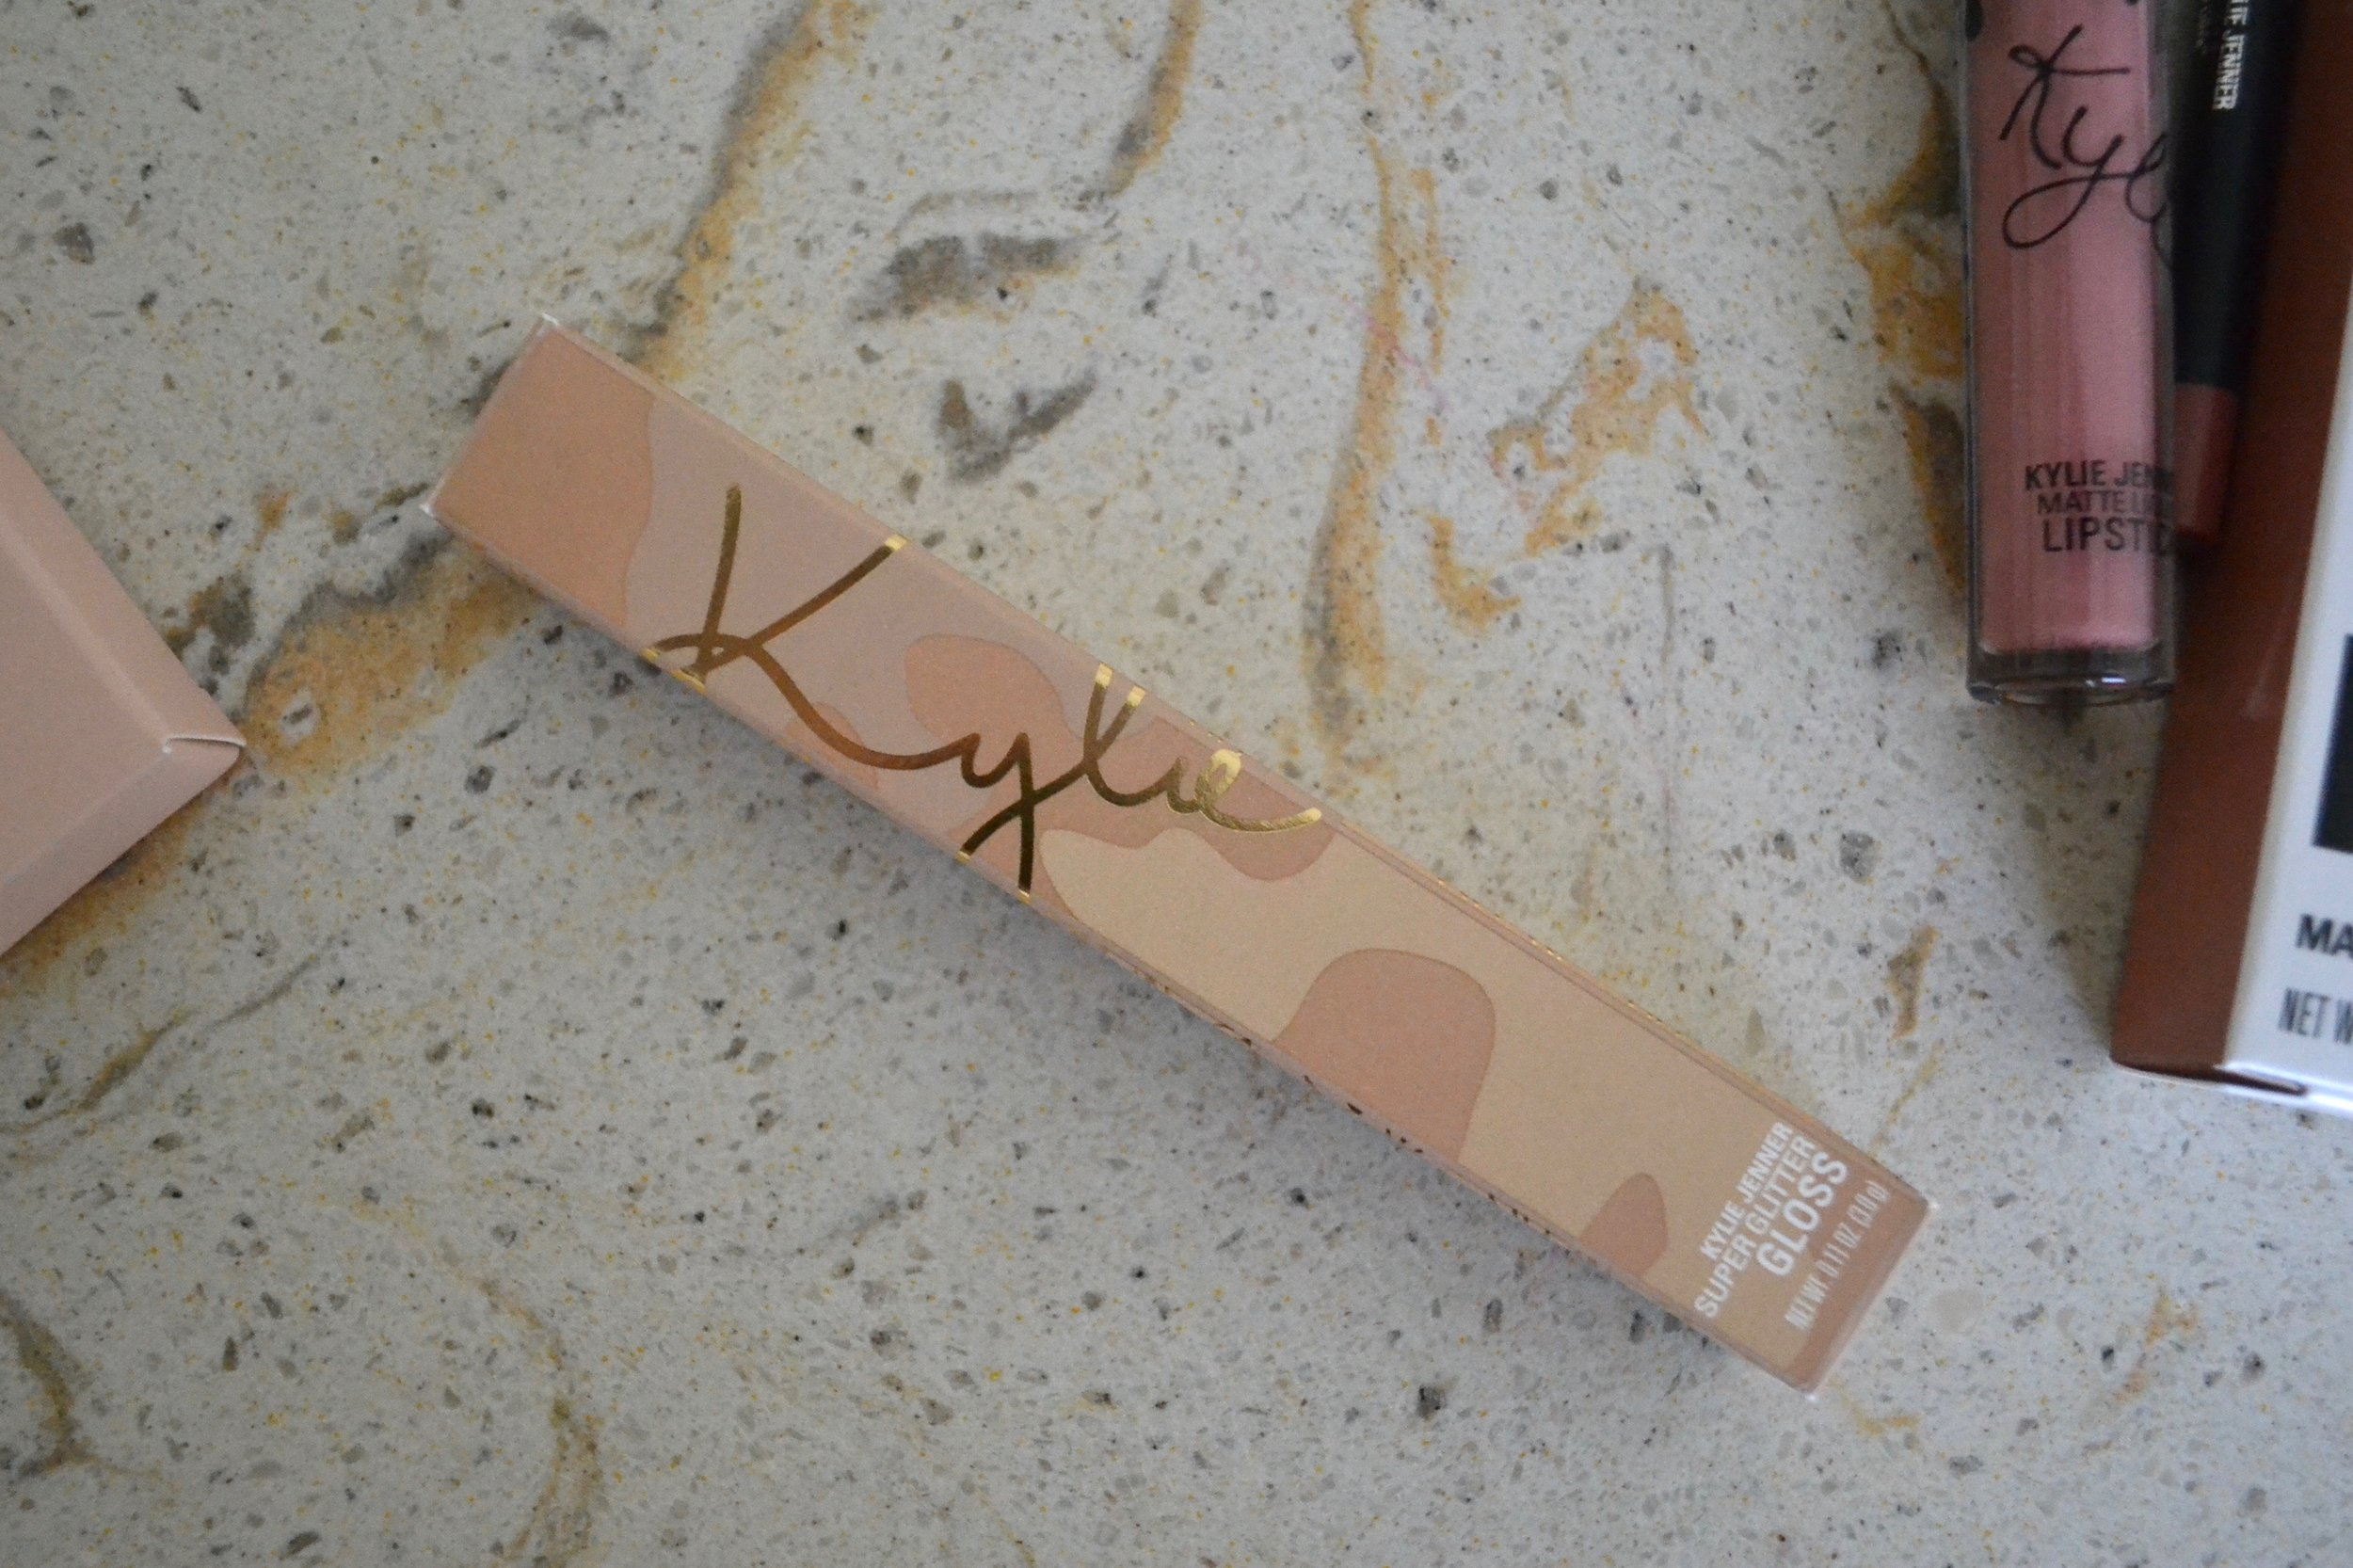 Kylie Cosmetics Vacation Edition The Wet Set and more - Review and Swatches